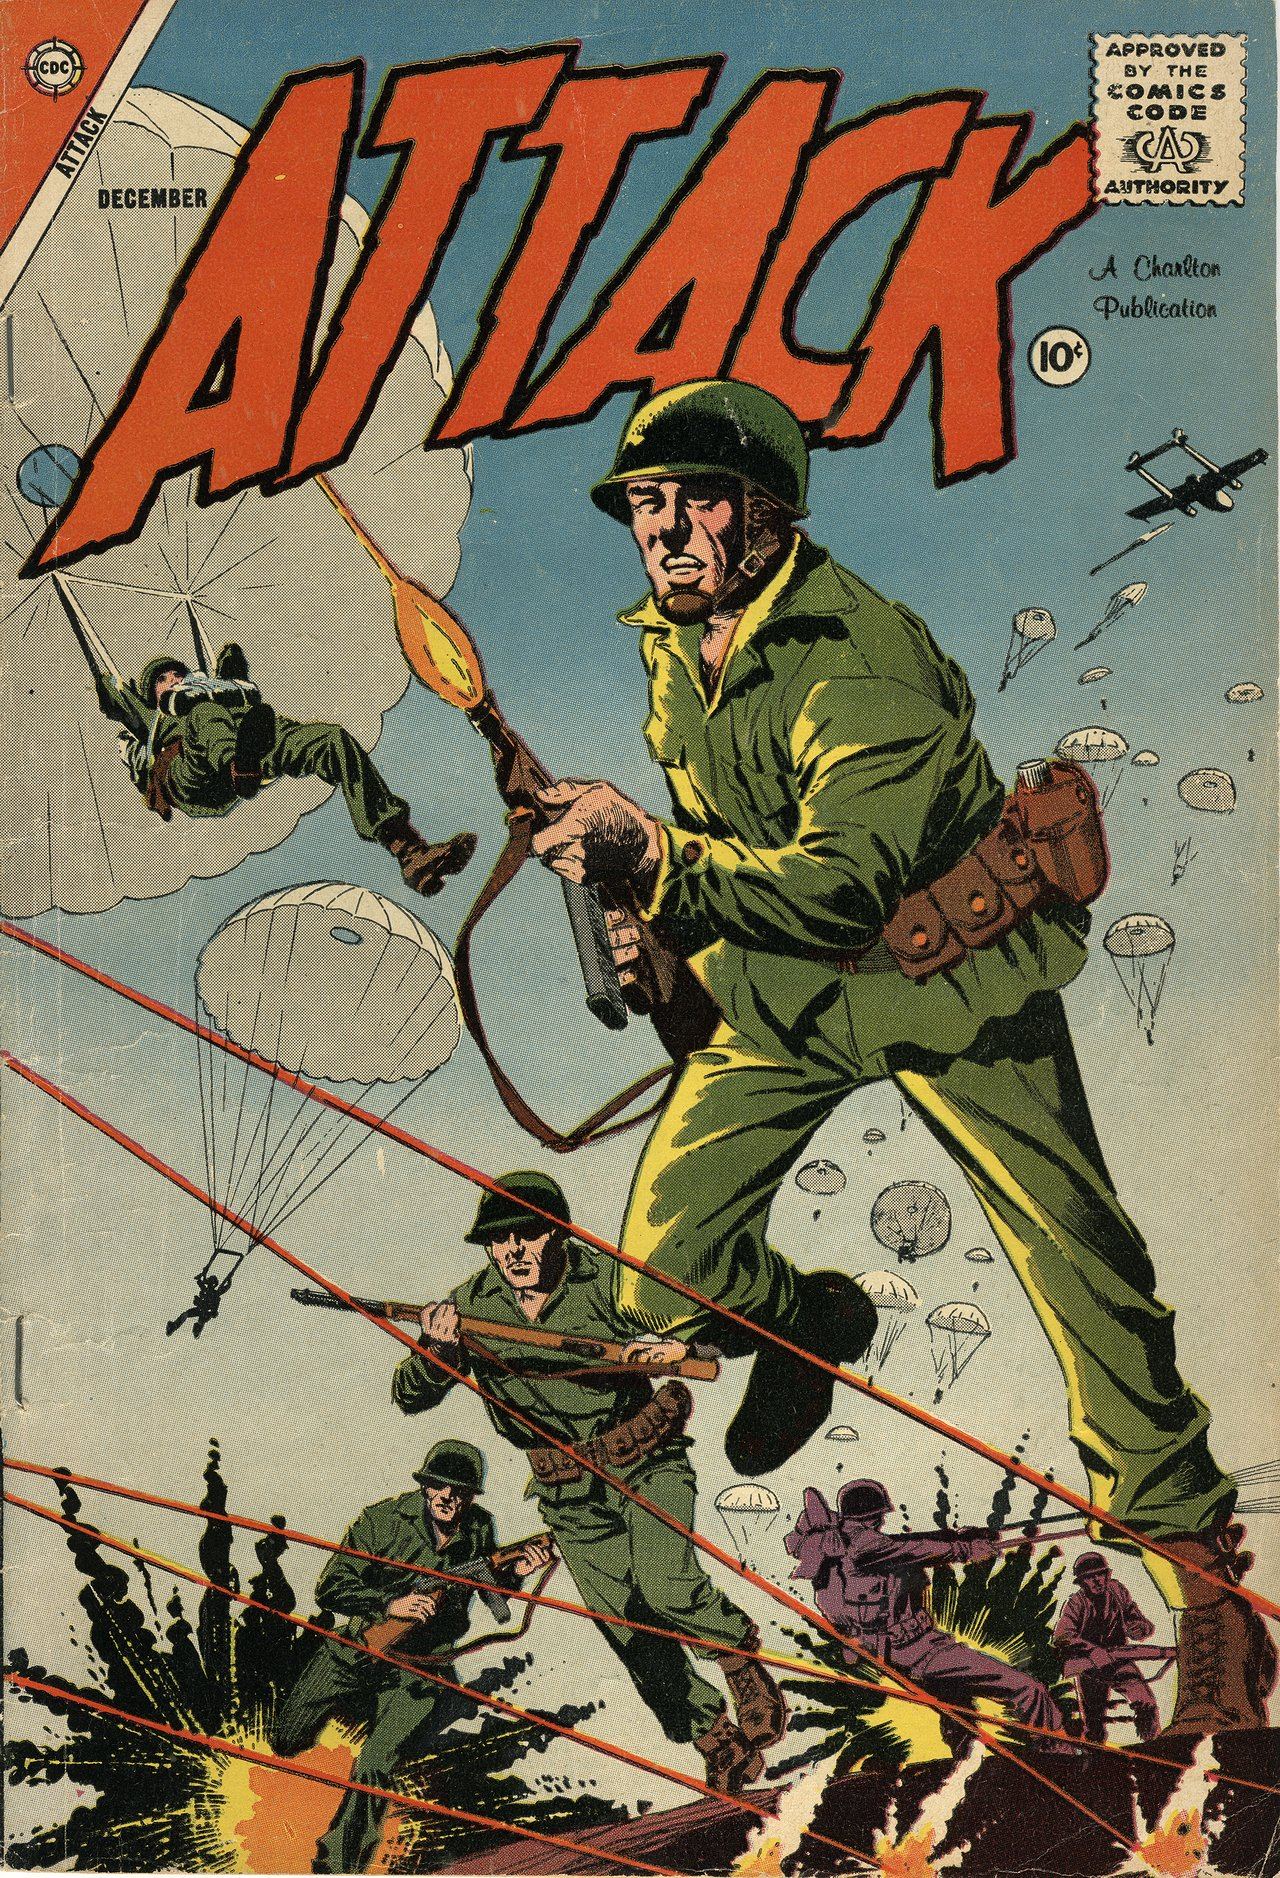 Attack #55, cover by Dick Giordano.